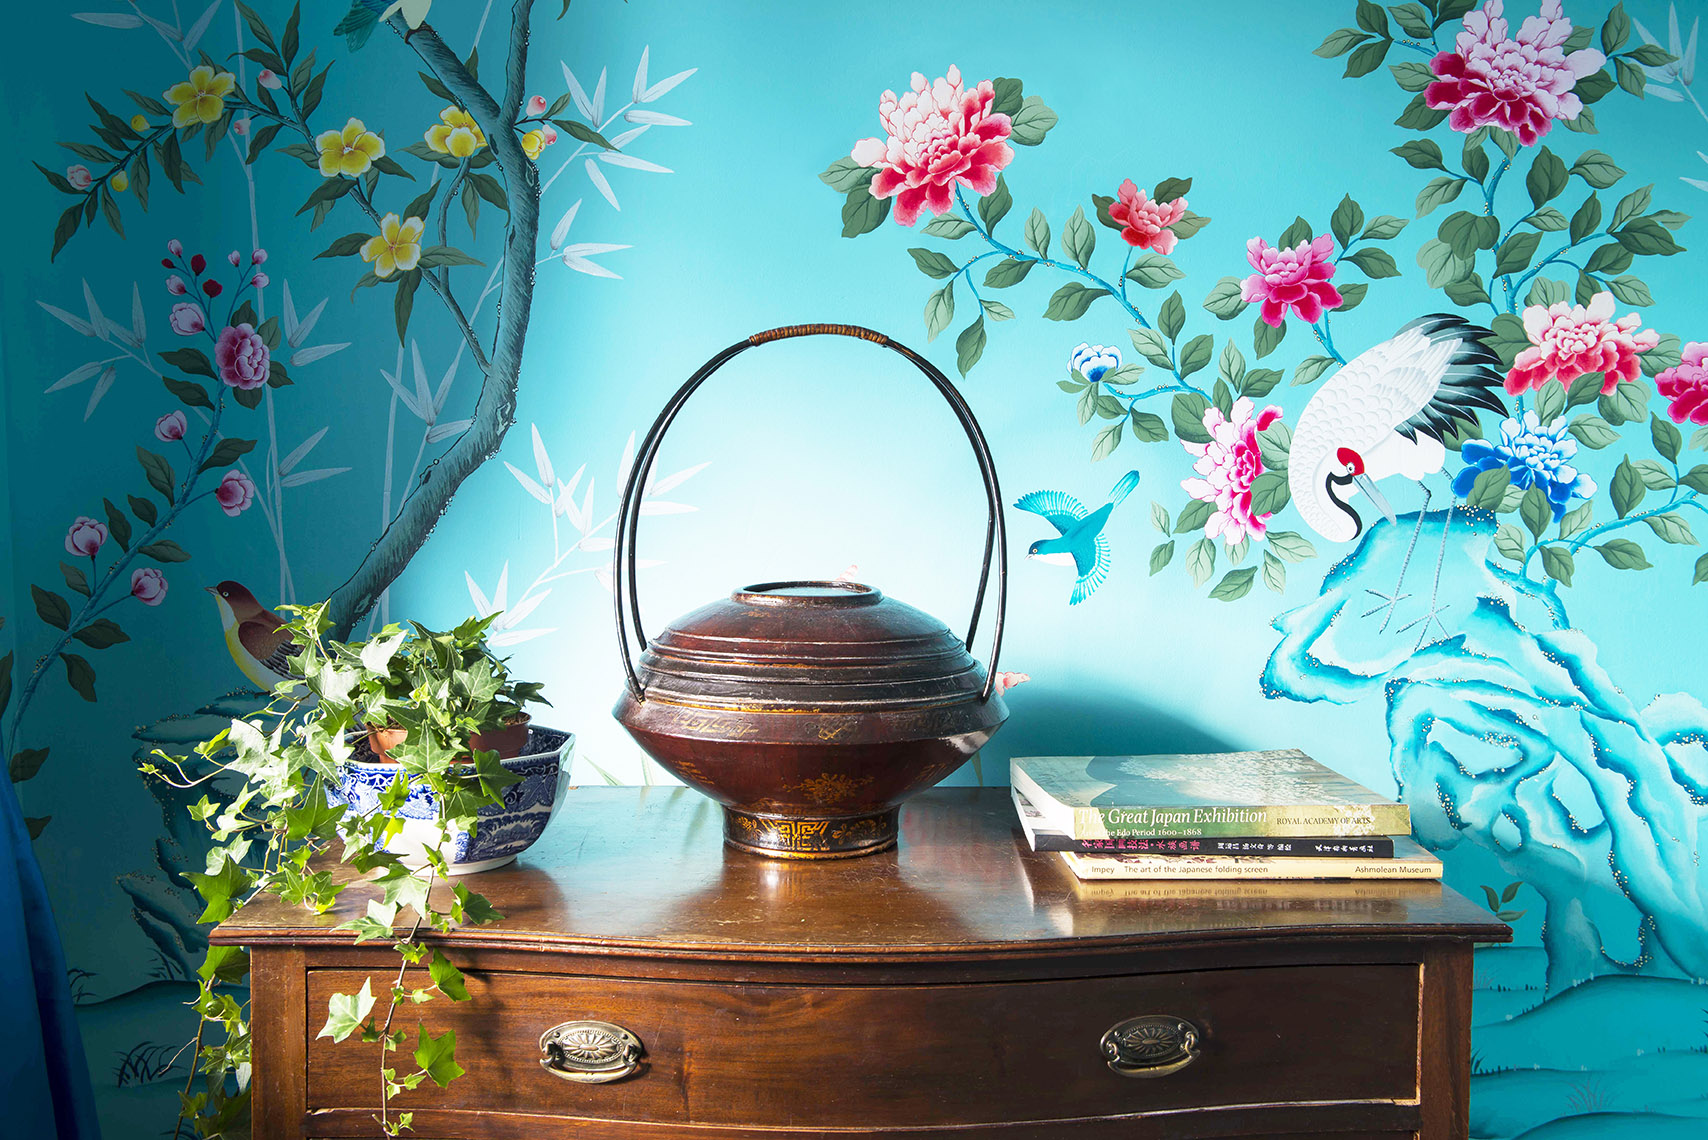 diane hill hand painted interiors turquoise chinoiserie mural nursery room bamboo